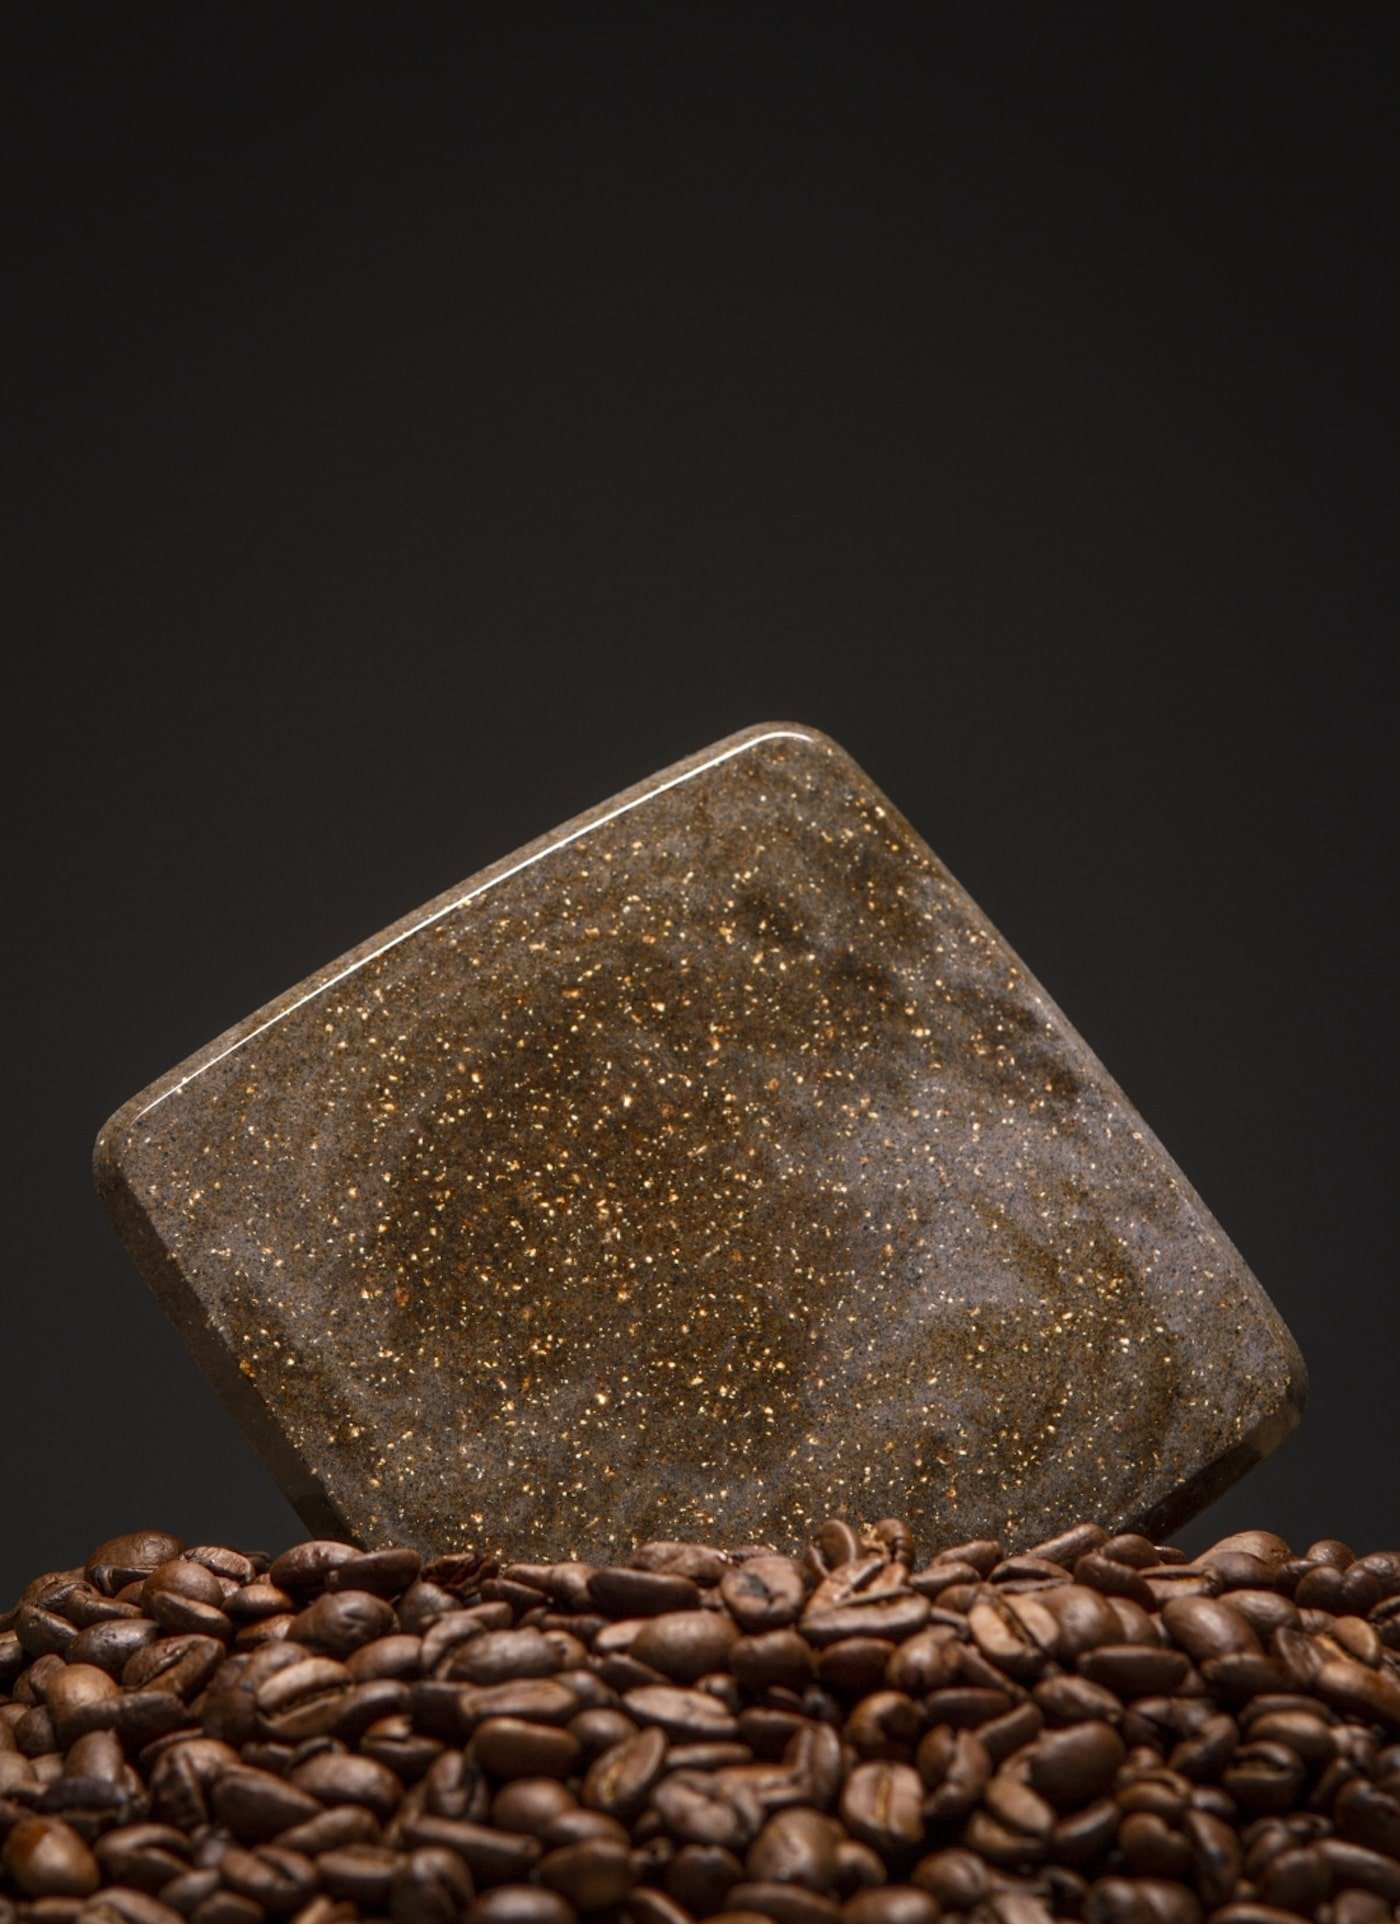 Coaster made from coffee grounds bio based material